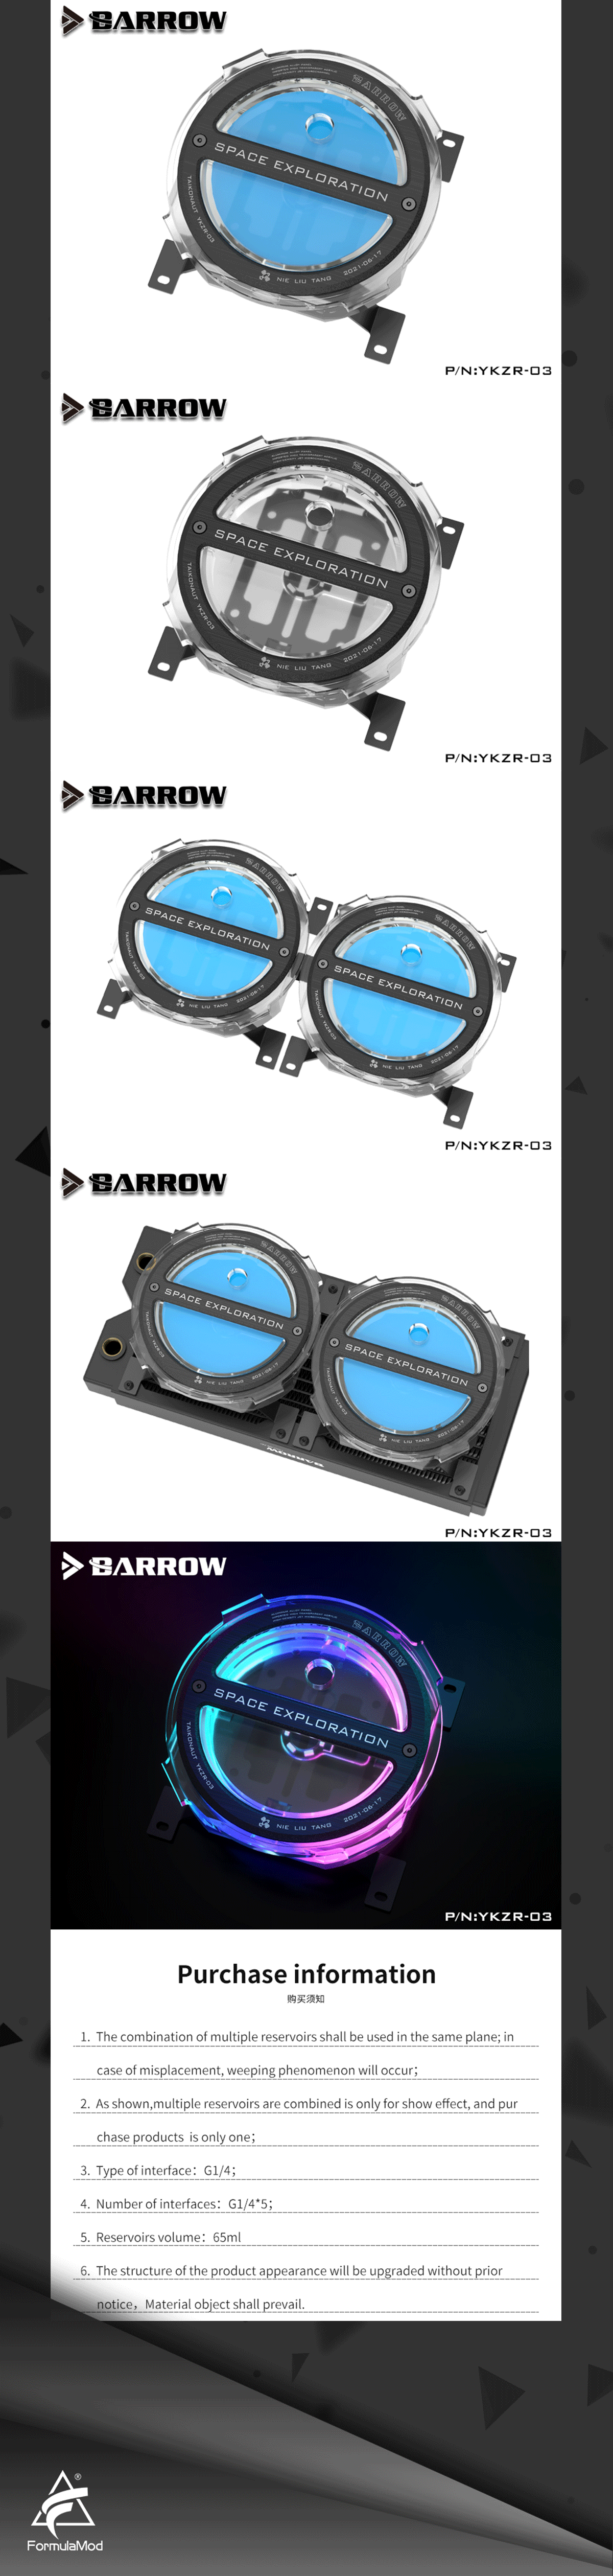 """Barrow Reservoir YKZR-03 Combined Split Space Exploration Reservoir Acrylic G1/4""""Thread 65ML Capacity Water Cooling System"""